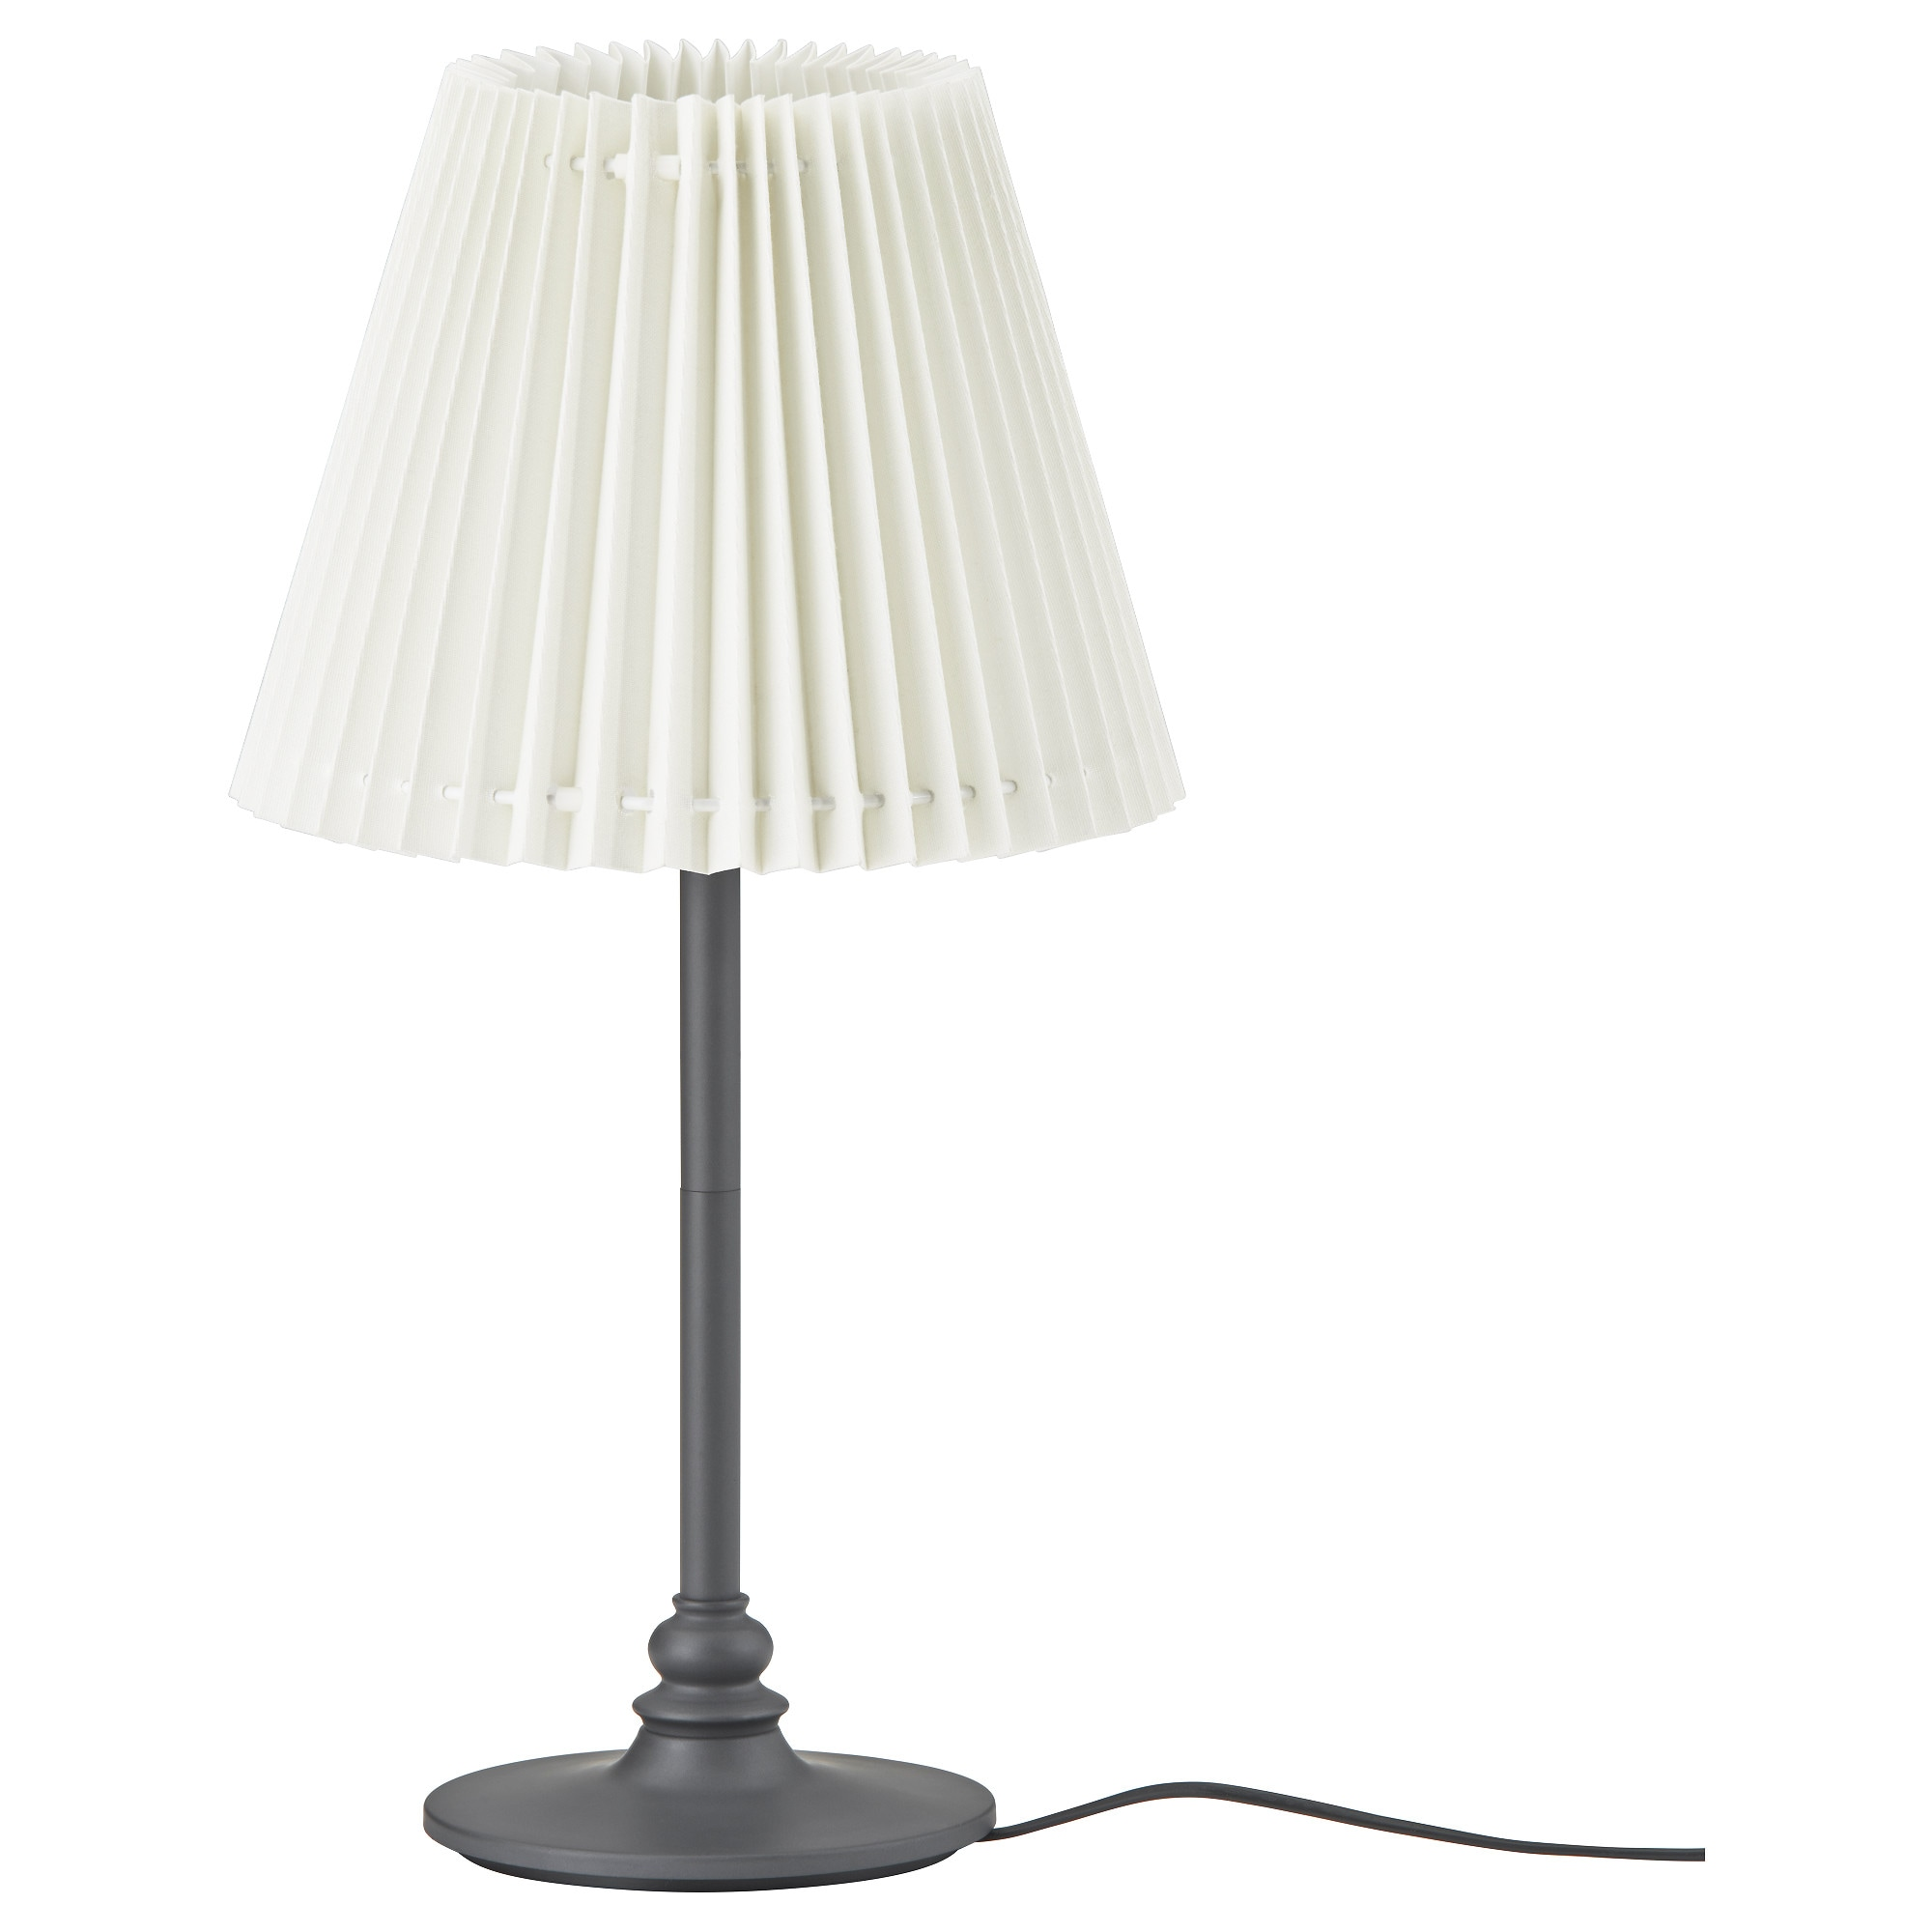 NGLAND Table lamp IKEA